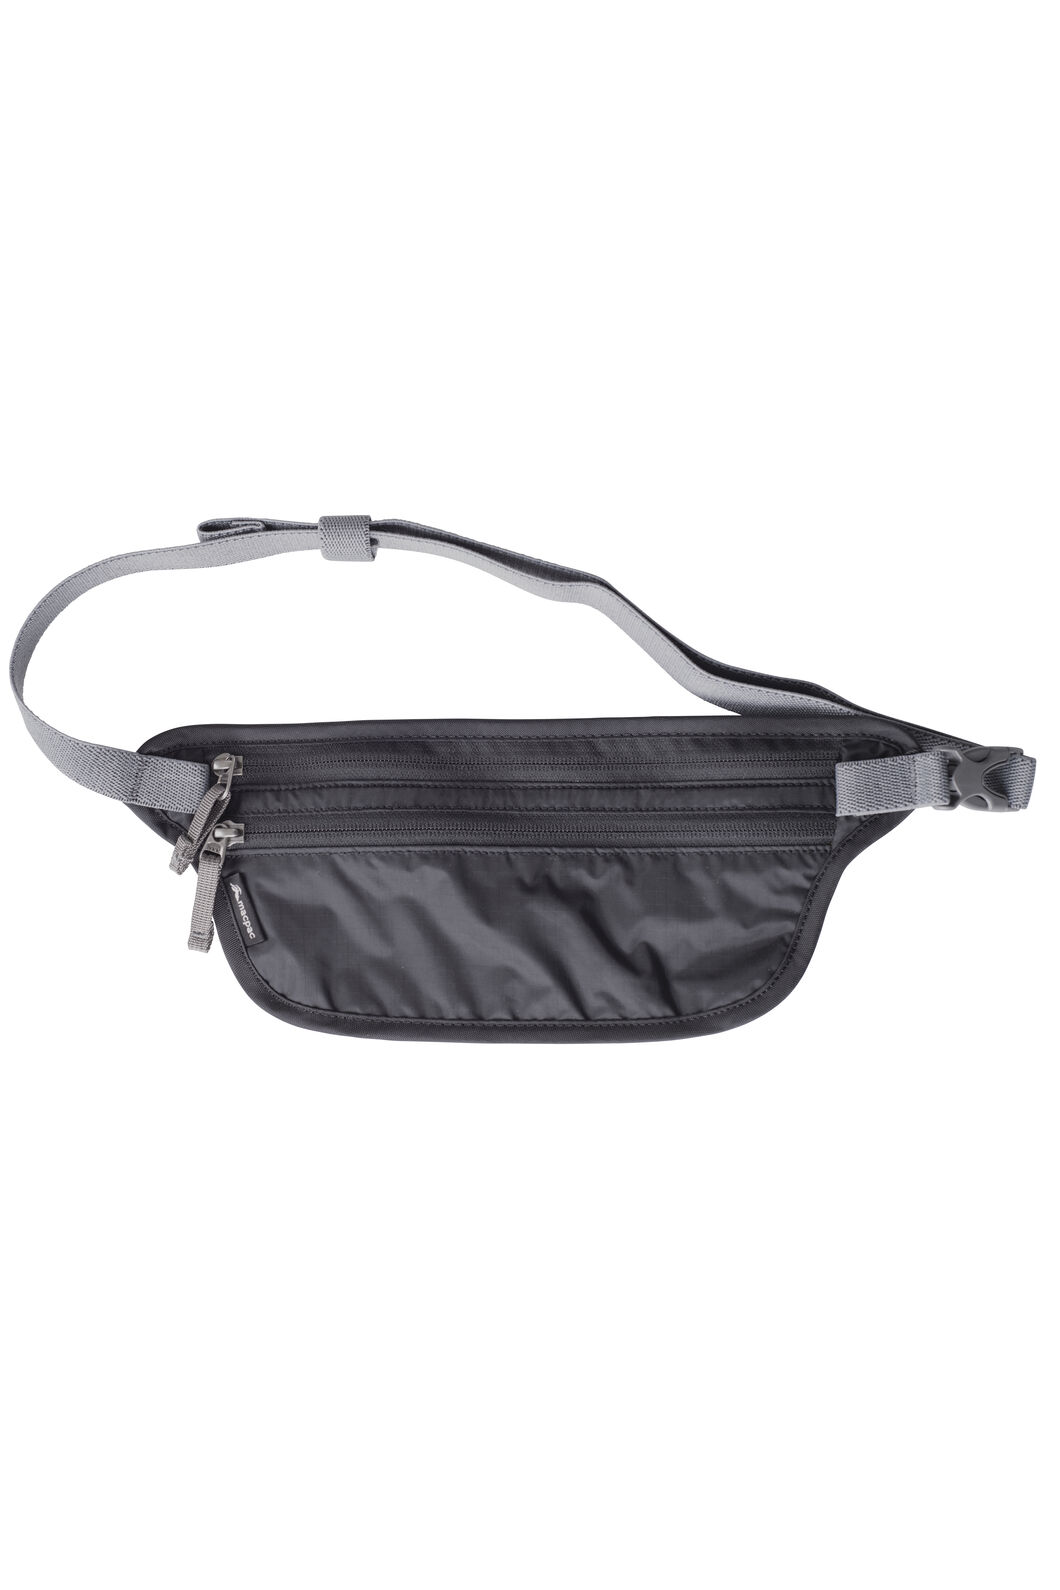 Macpac Money Belt, Black, hi-res